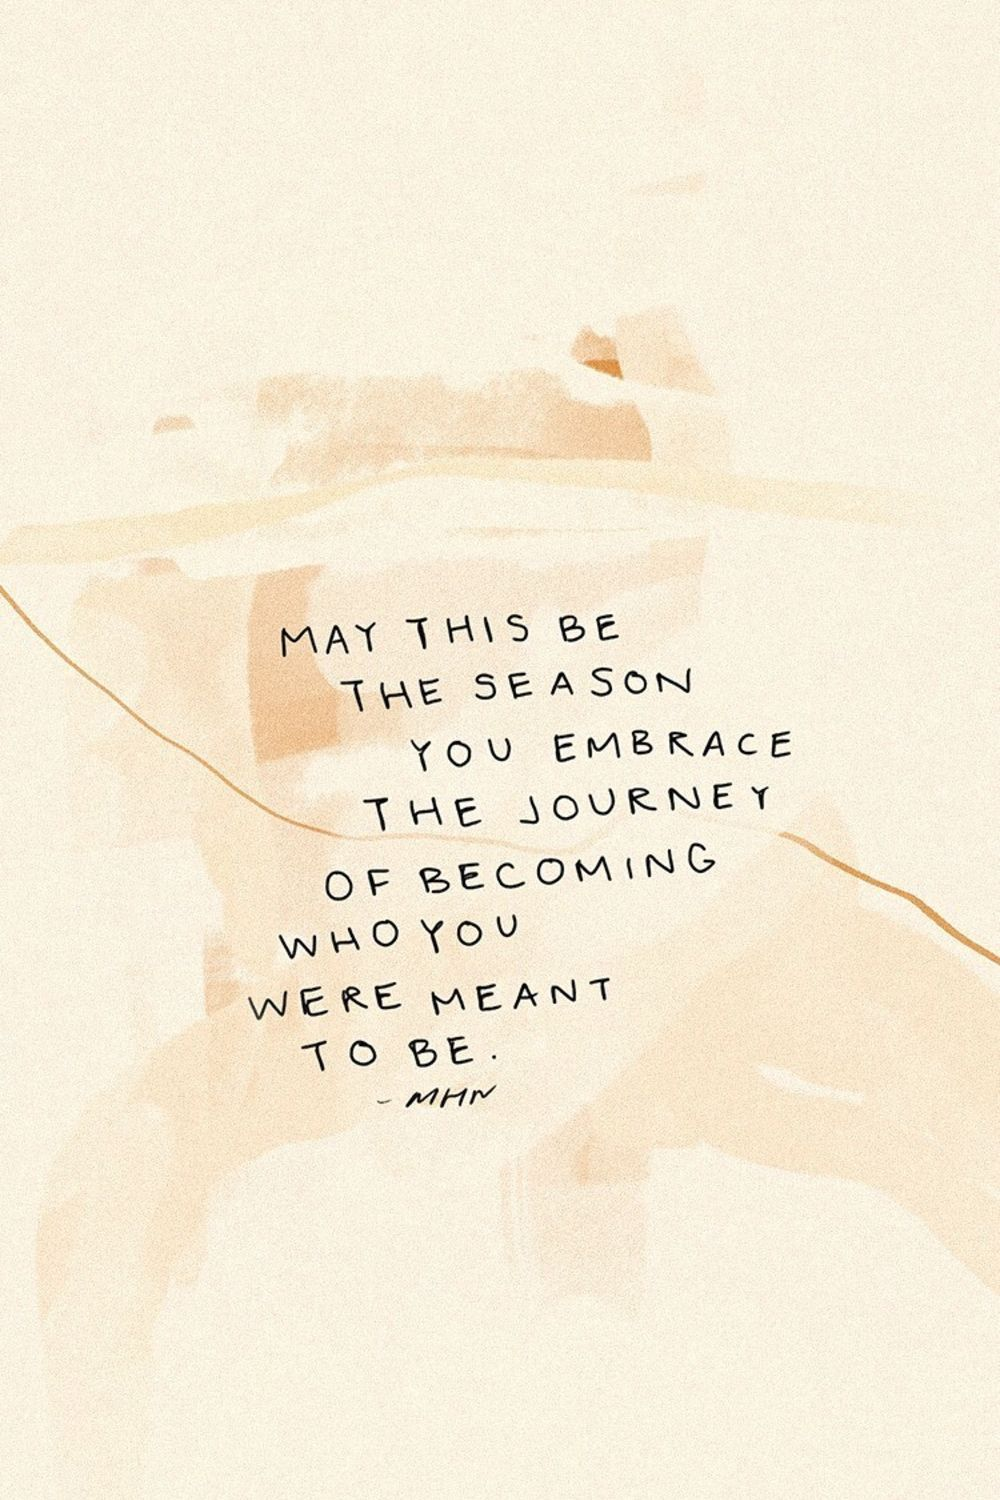 May this be the season you embrace the journey of becoming who you were meant to be.